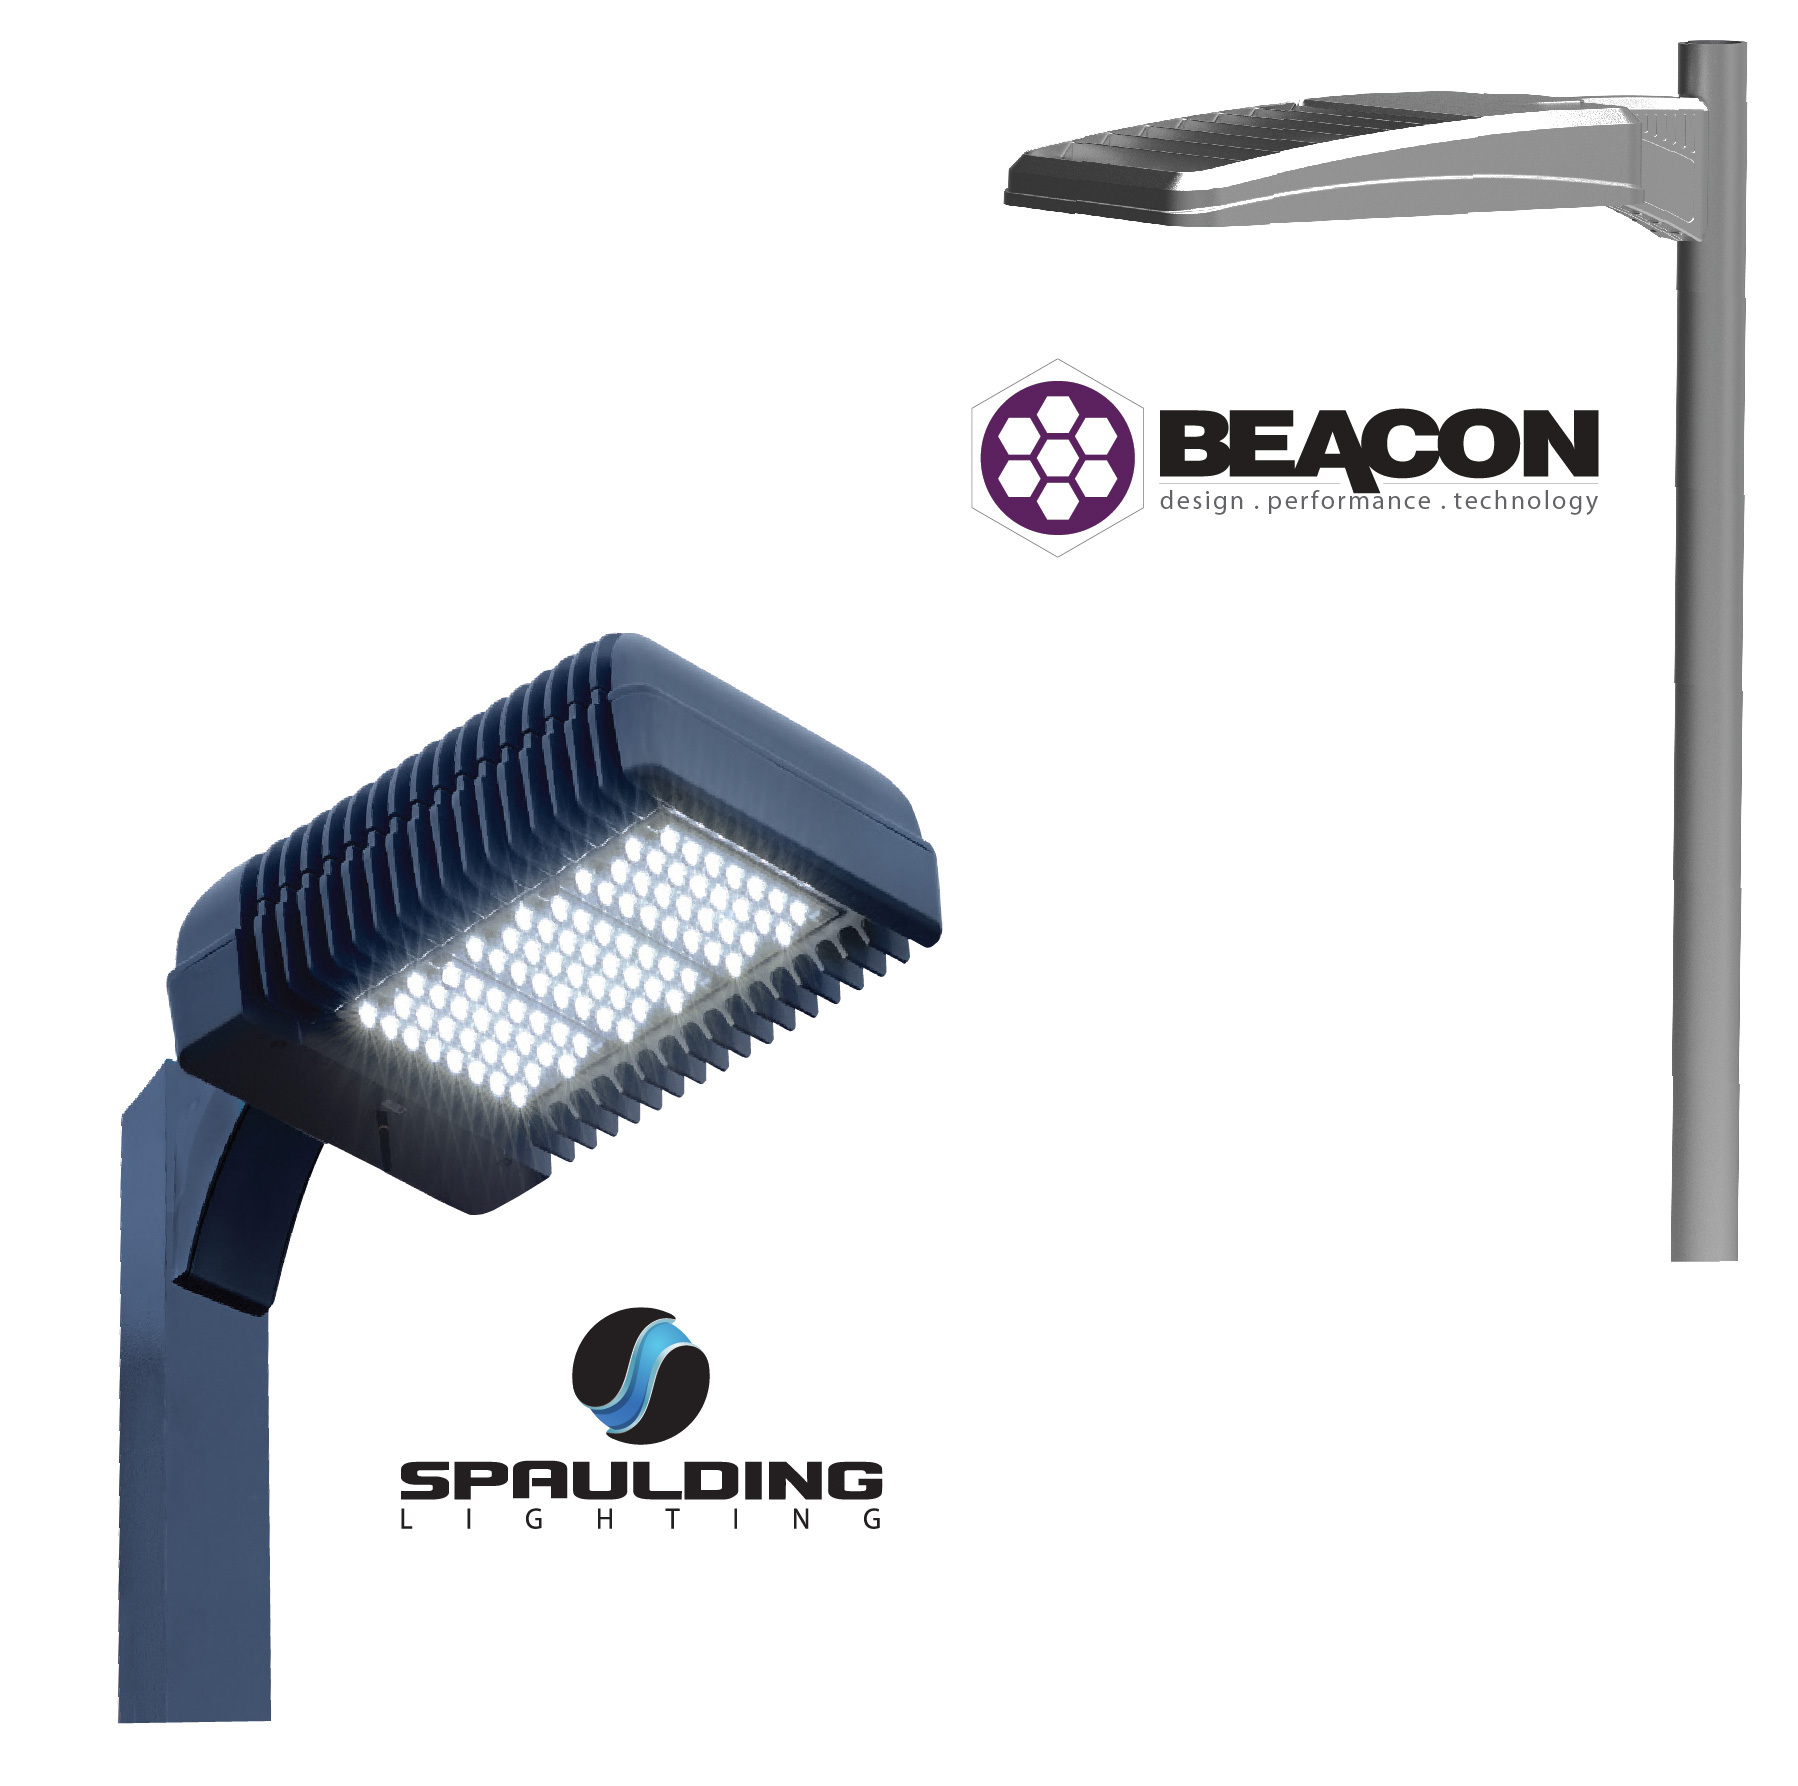 Spaulding Lighting And Beacon Products Have Introduced New Optical Packages Specifically Designed For Auto Dealerships